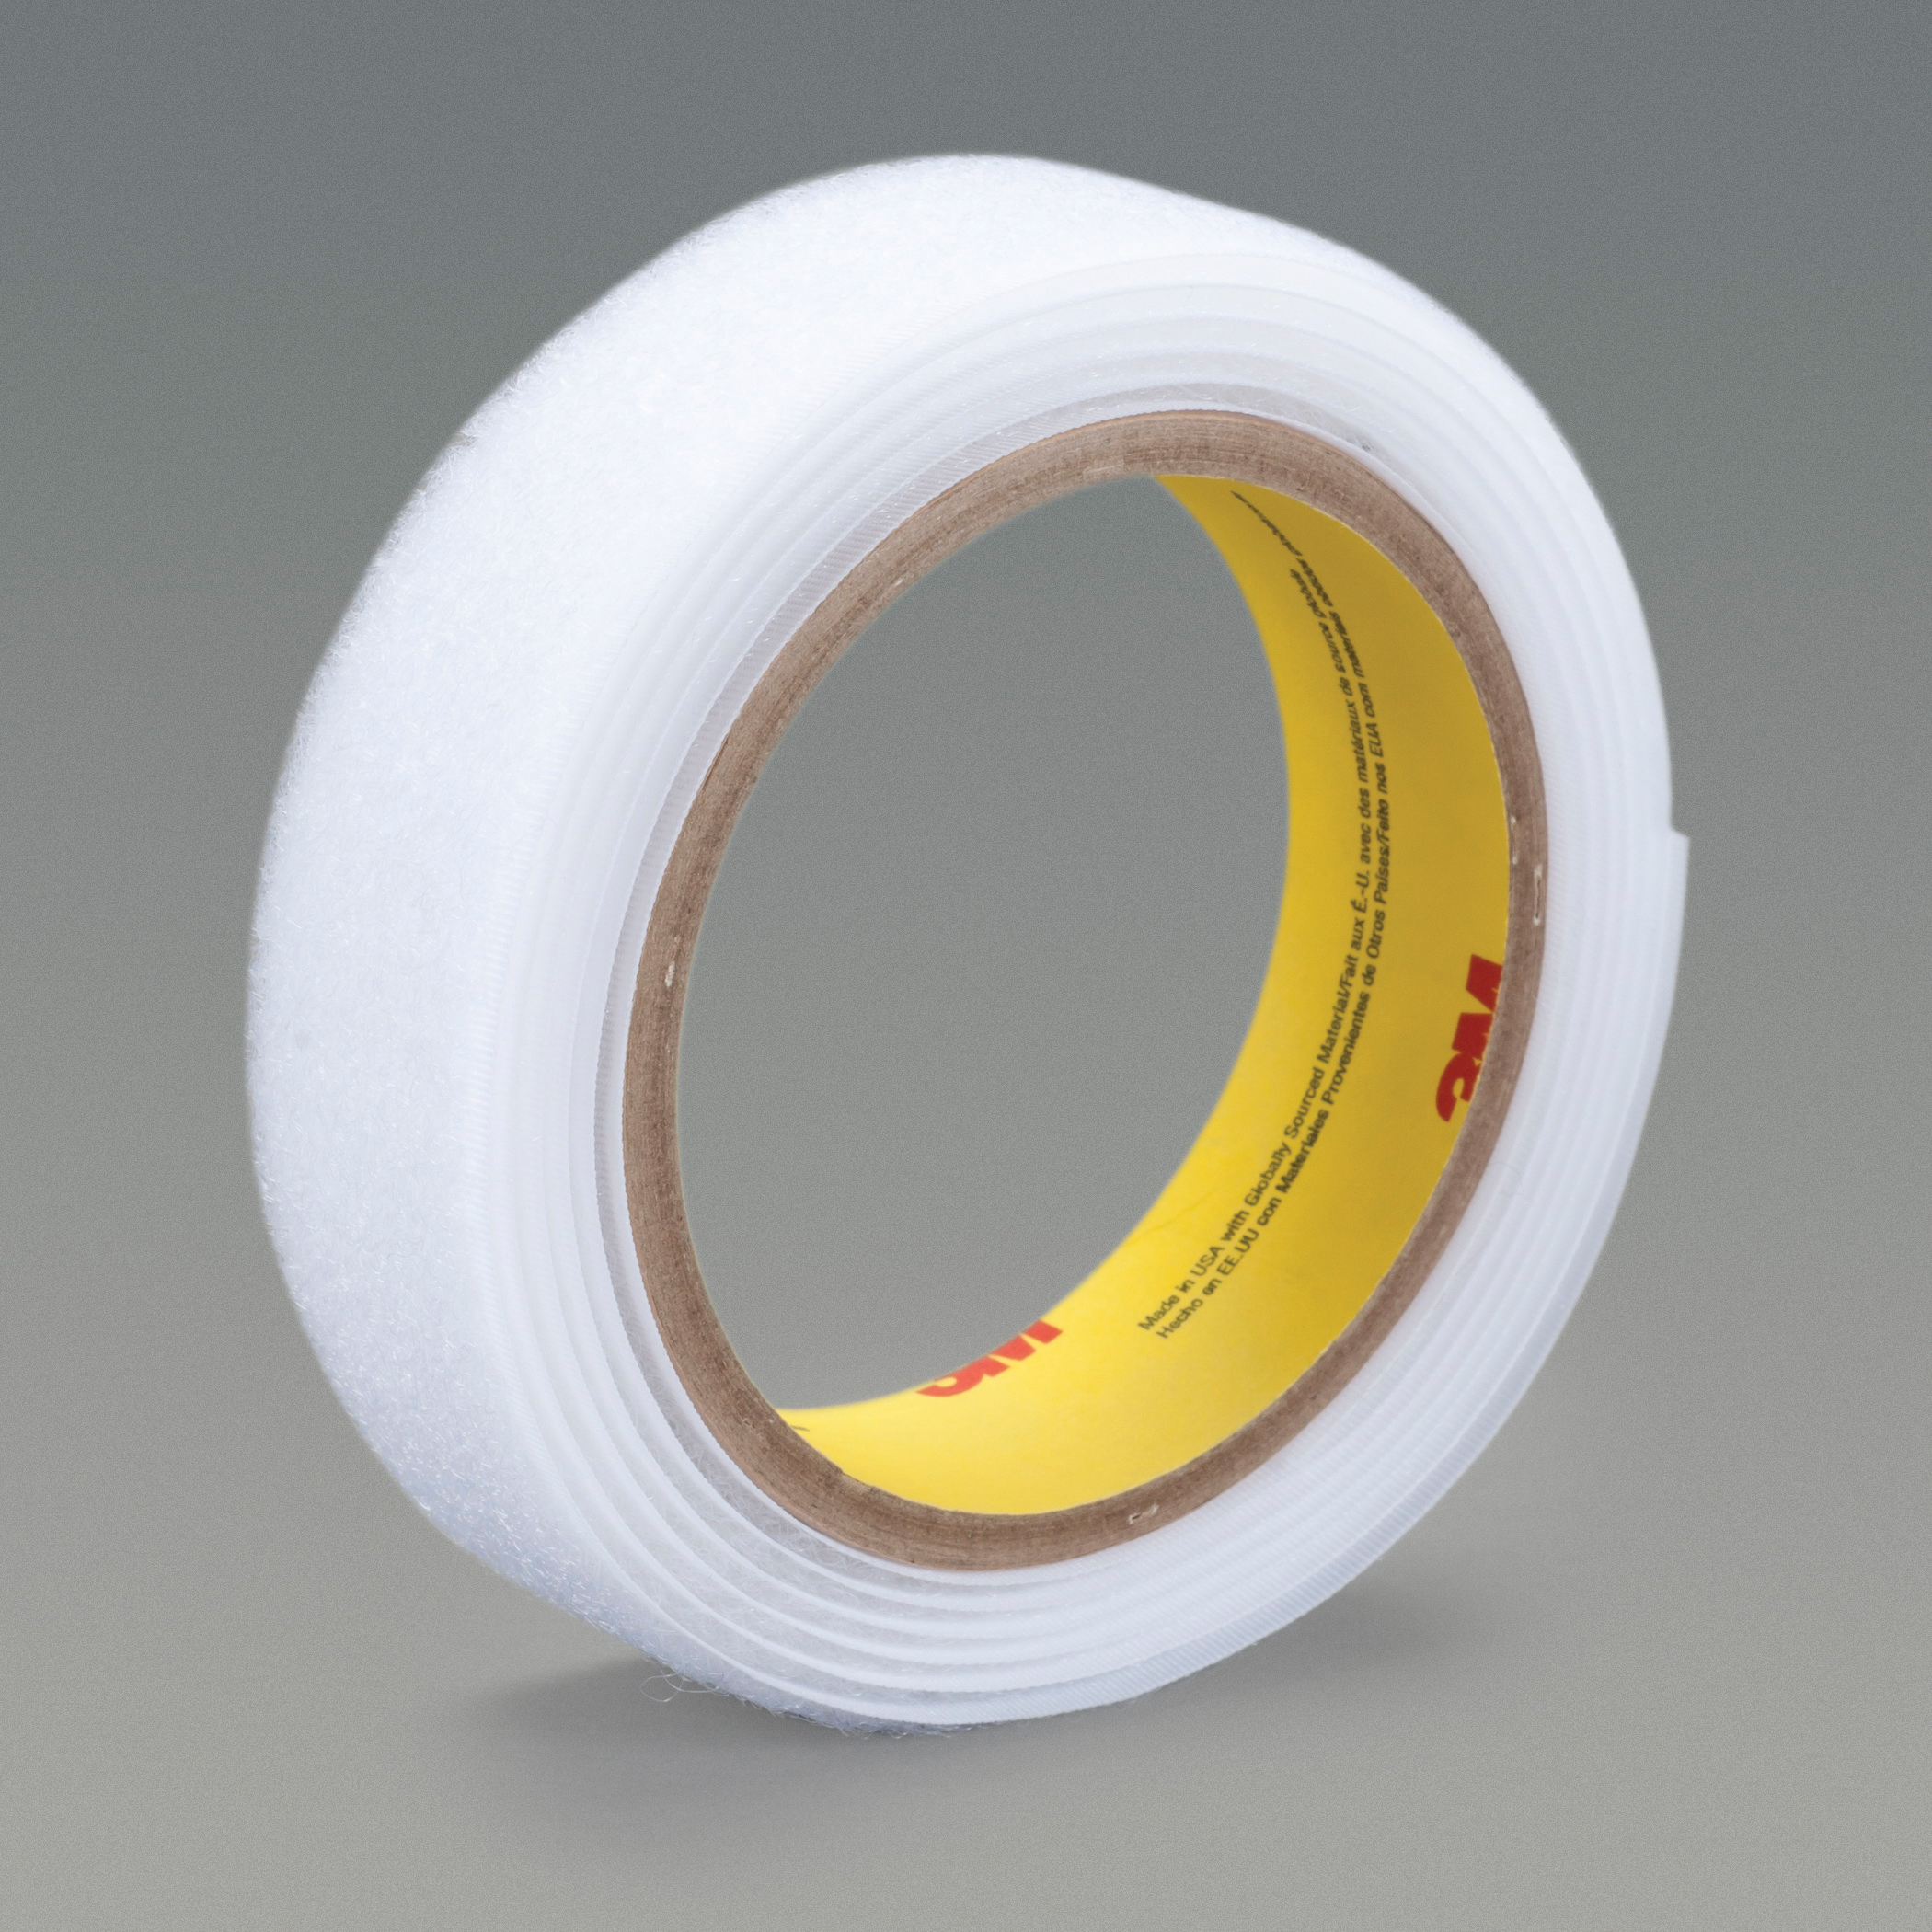 3M™ 021200-46010 Reclosable Hook Fastener Tape, 50 yd L x 2 in W, 0.15 in THK Engaged, Synthetic Rubber Adhesive, Woven Nylon Backing, White